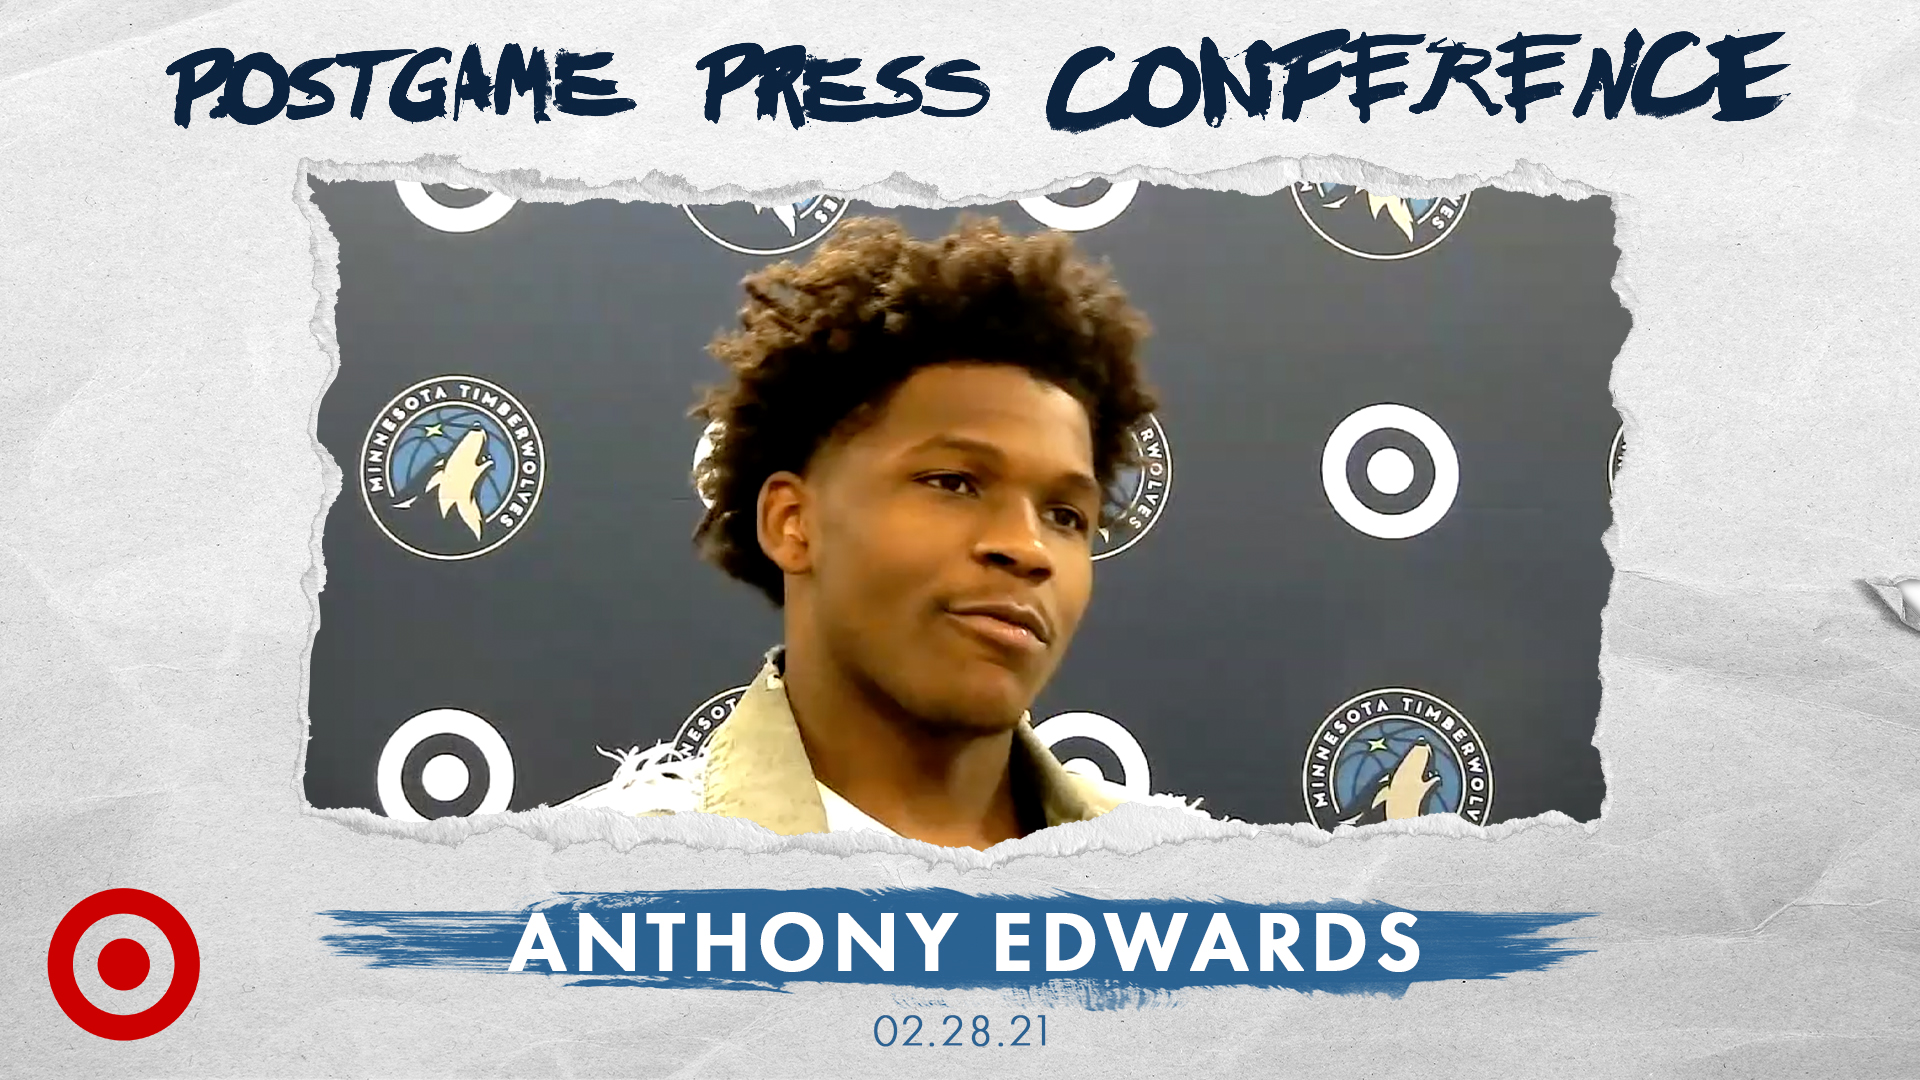 Anthony Edwards Postgame Press Conference - February 28, 2021